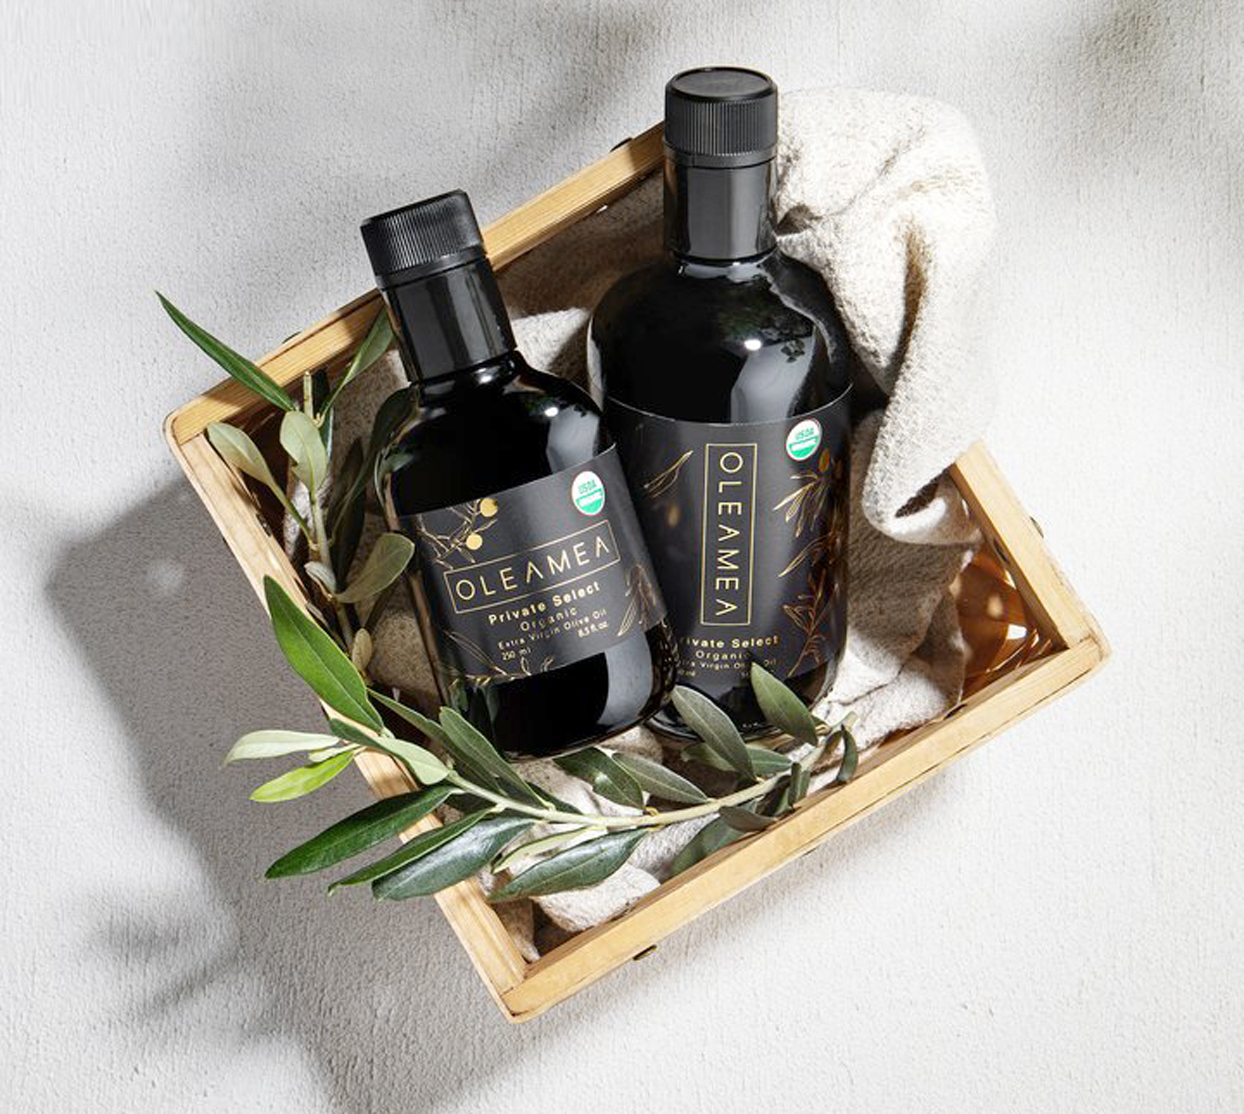 Two bottles of Oleamea olive oil in a wooden container